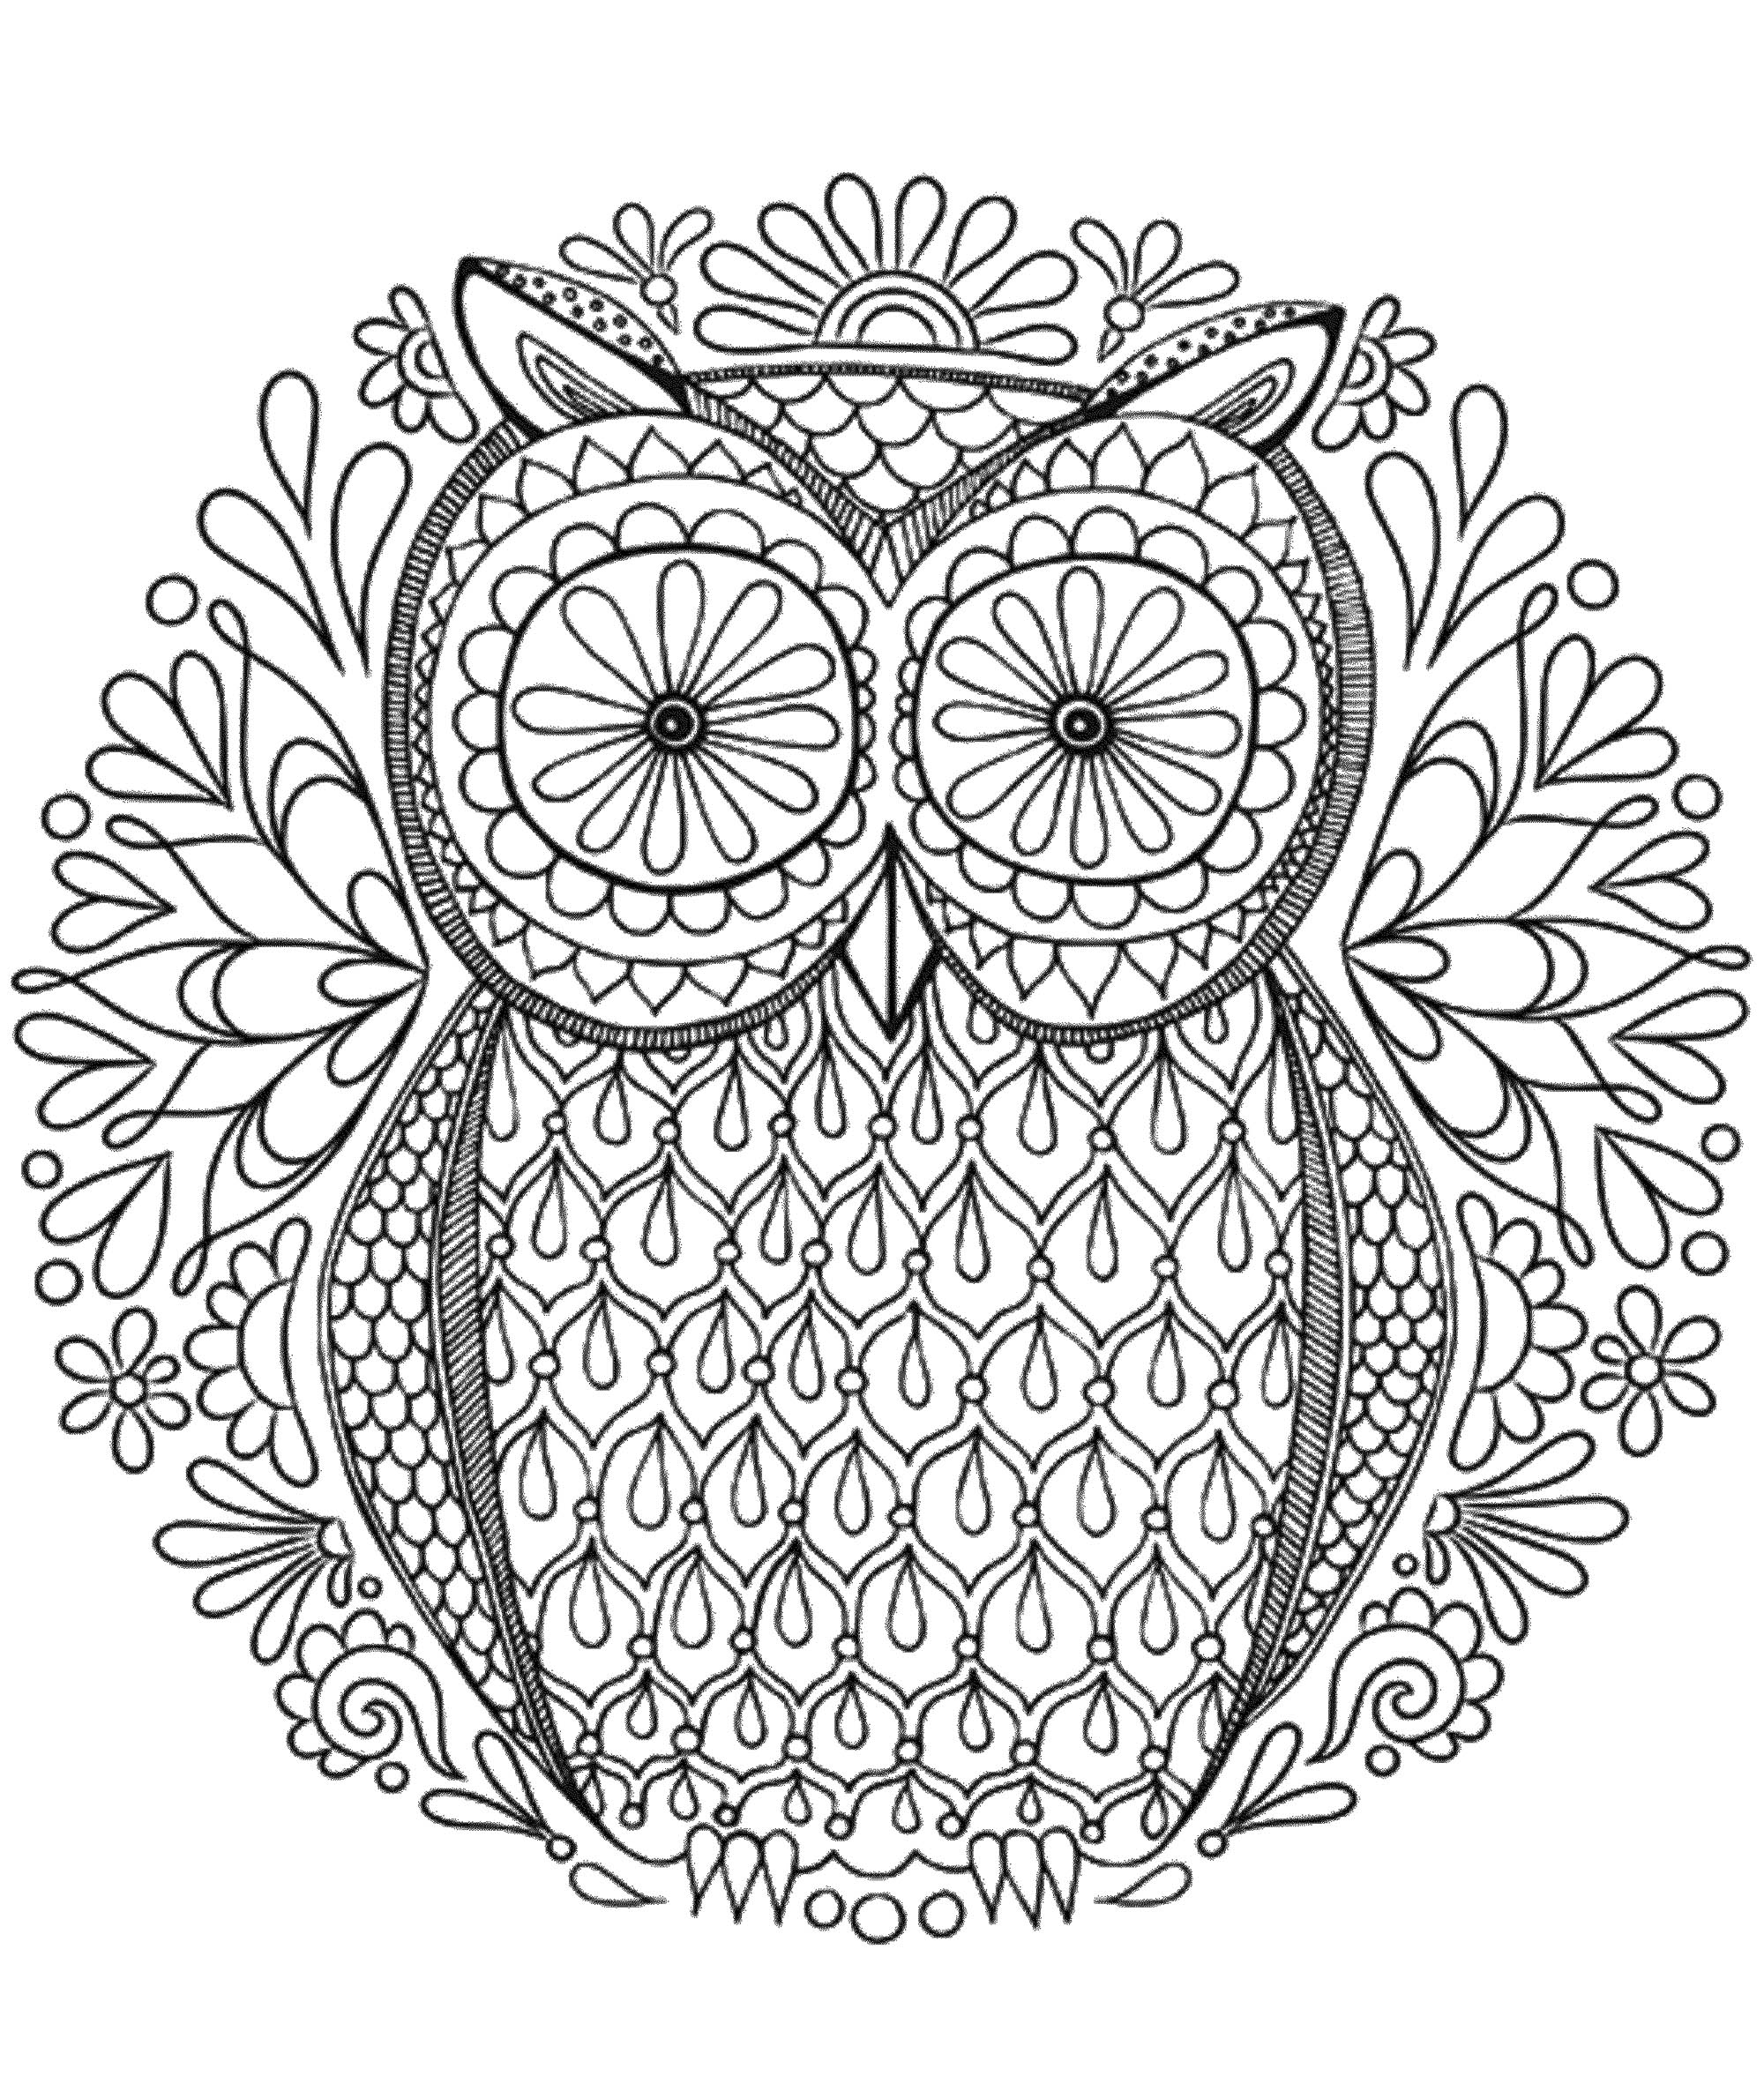 Coloring pages adults pdf